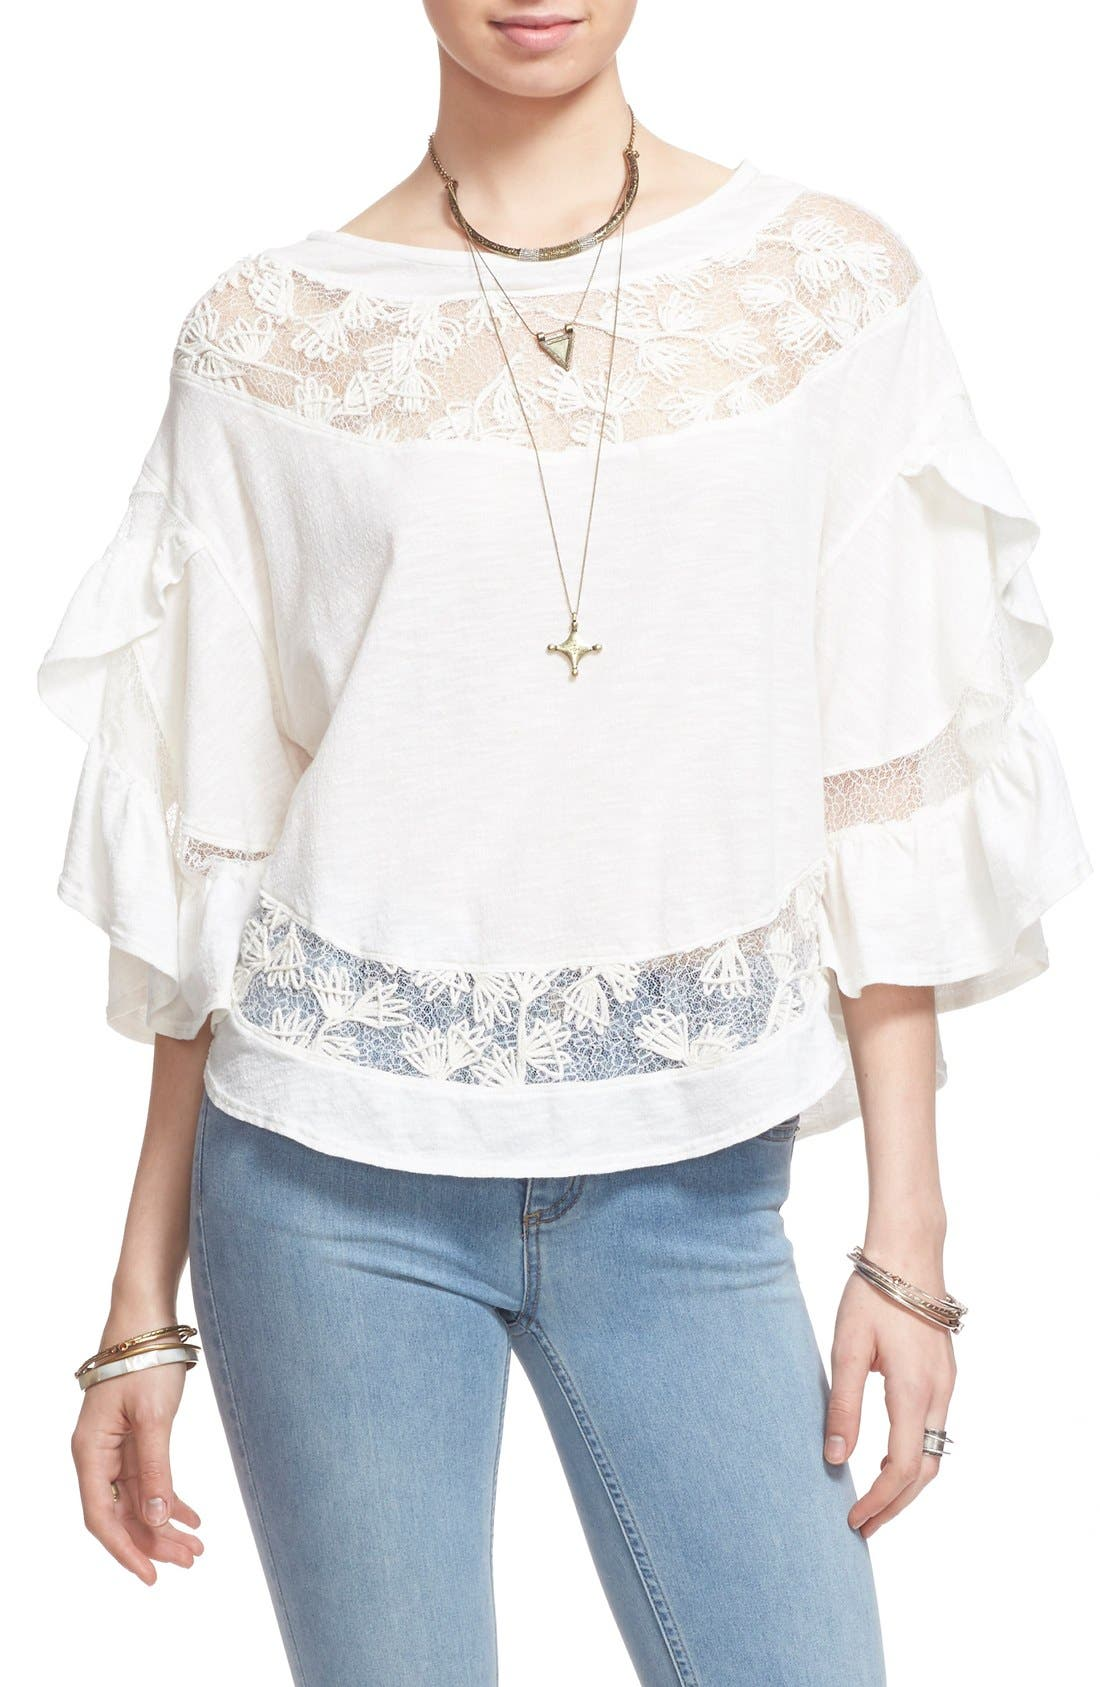 'Love Affair' Lace Inset Knit Top,                             Main thumbnail 1, color,                             Ivory